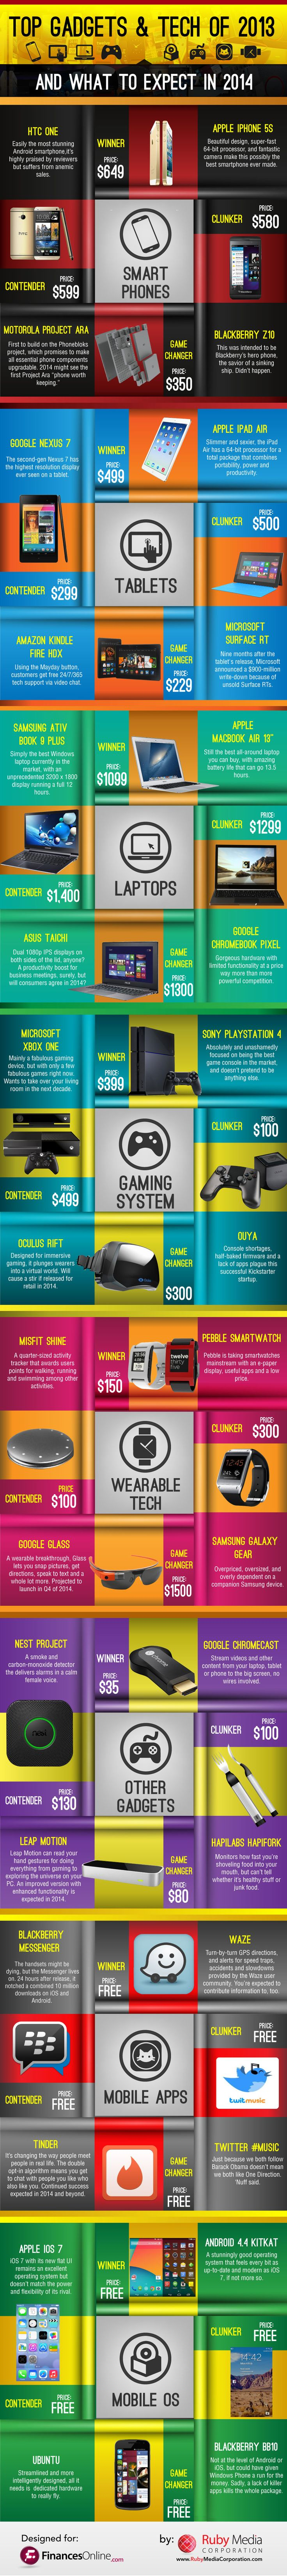 Top Gadgets 2013  all the gadgets some good and some bad, Resolution to bring you the best in 2014 to my blog :) xo